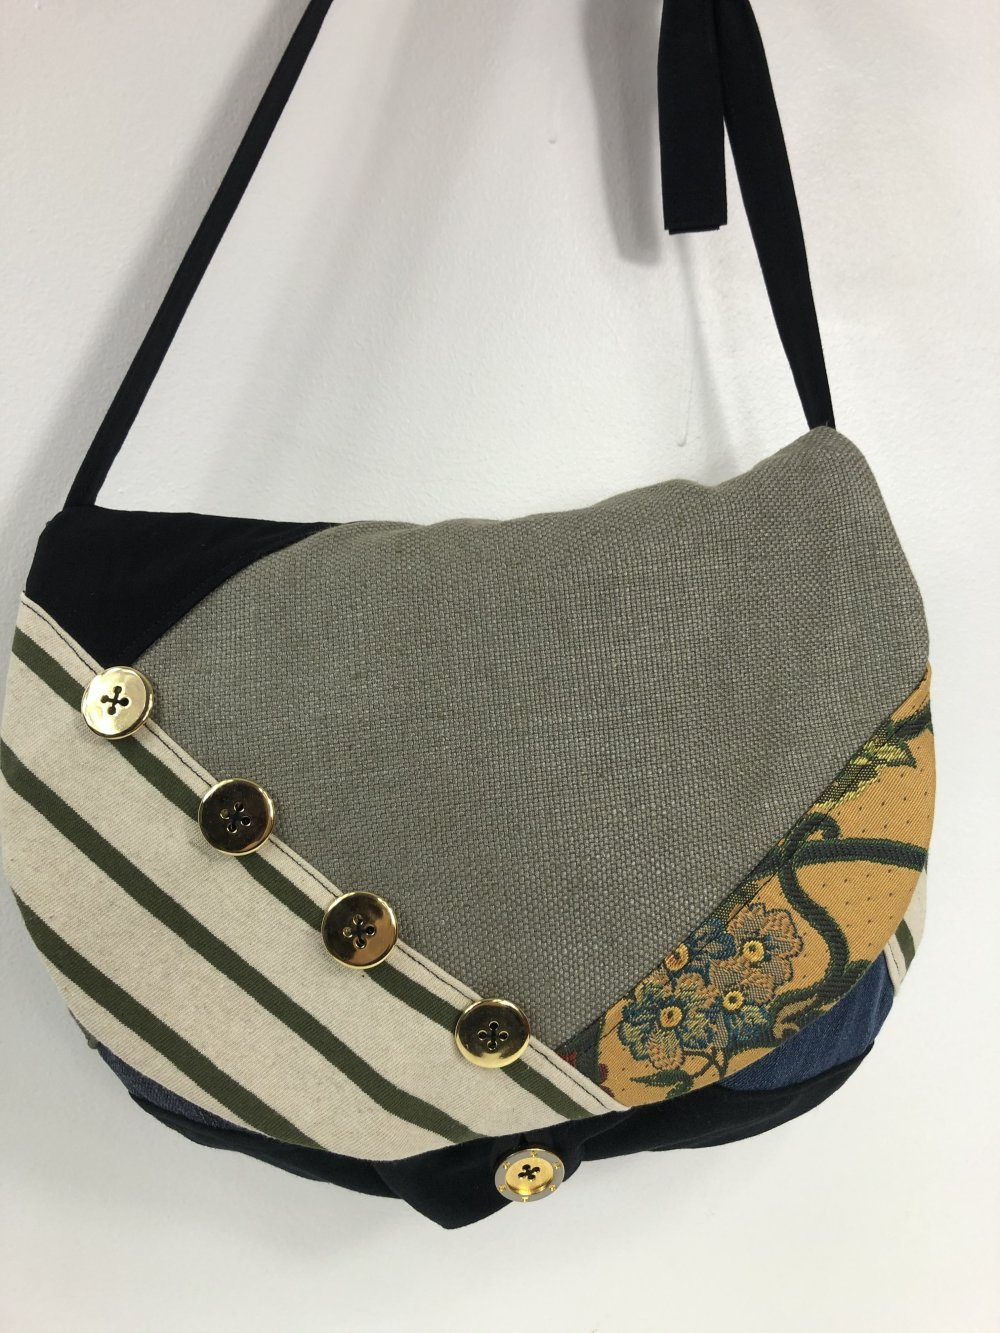 Sac Besace Tissus Patchwork Collection Lyna Réf 1586